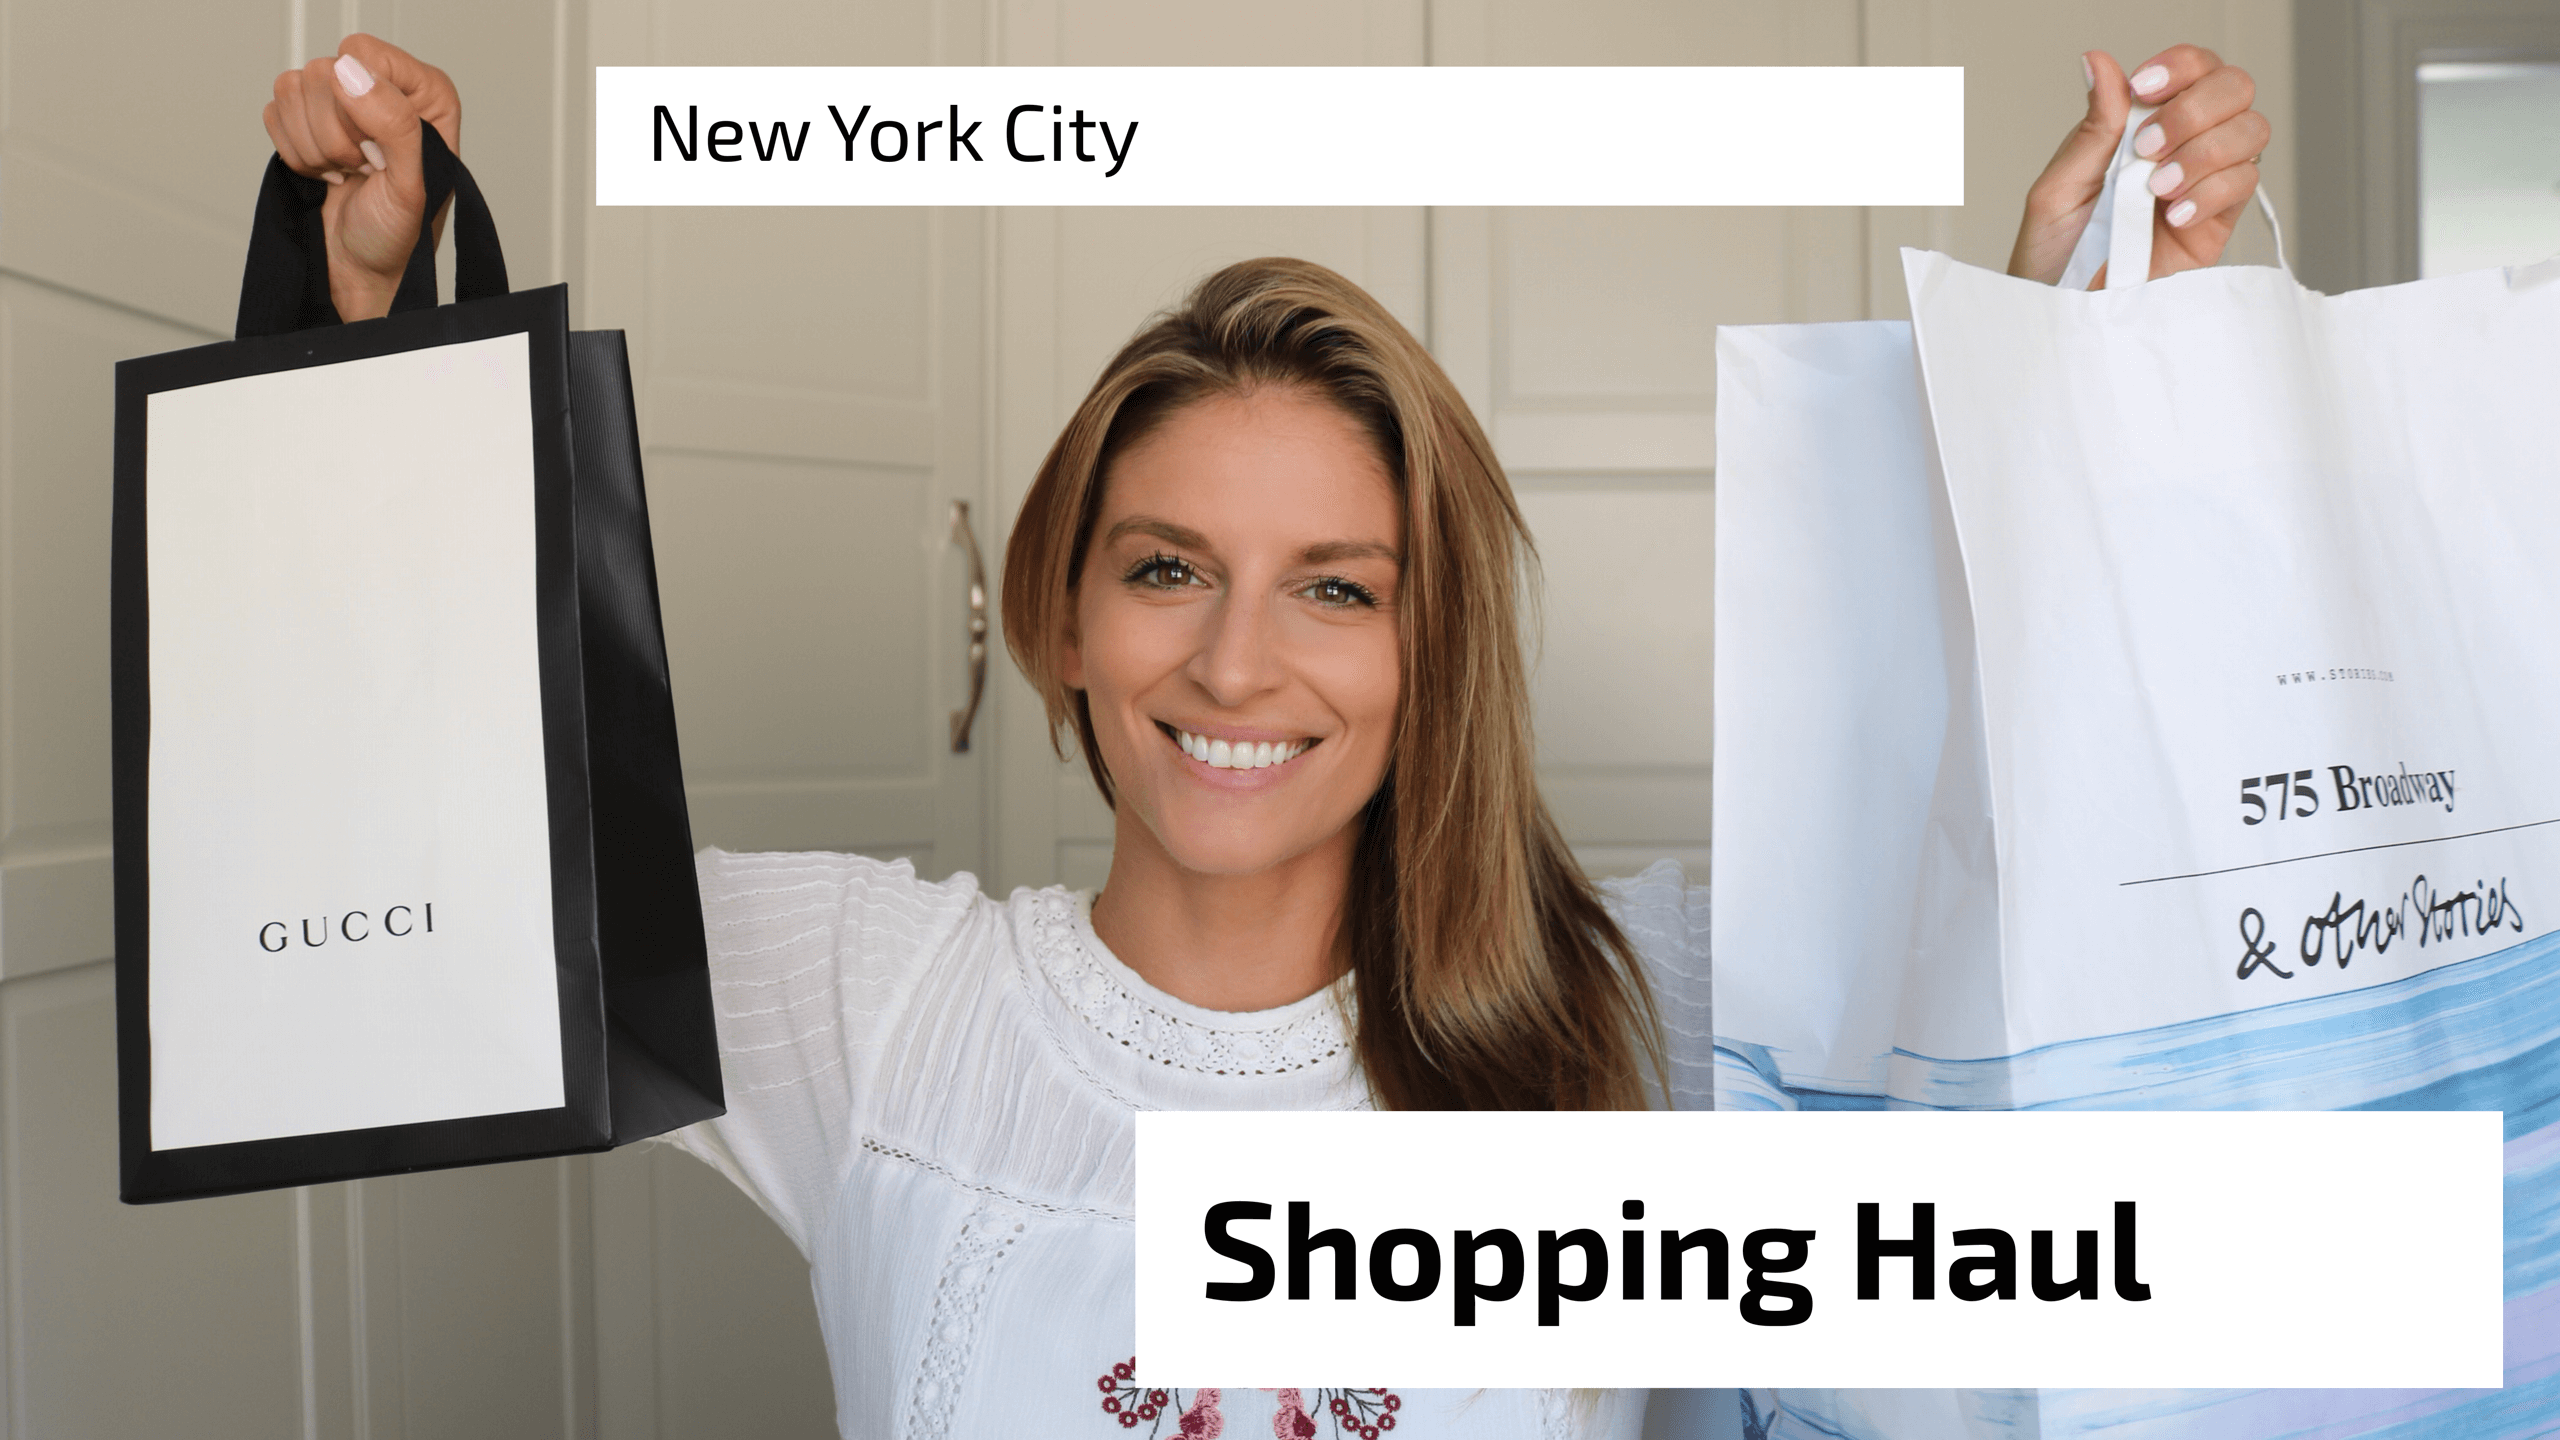 New York City Shopping Haul sparkleshinylove